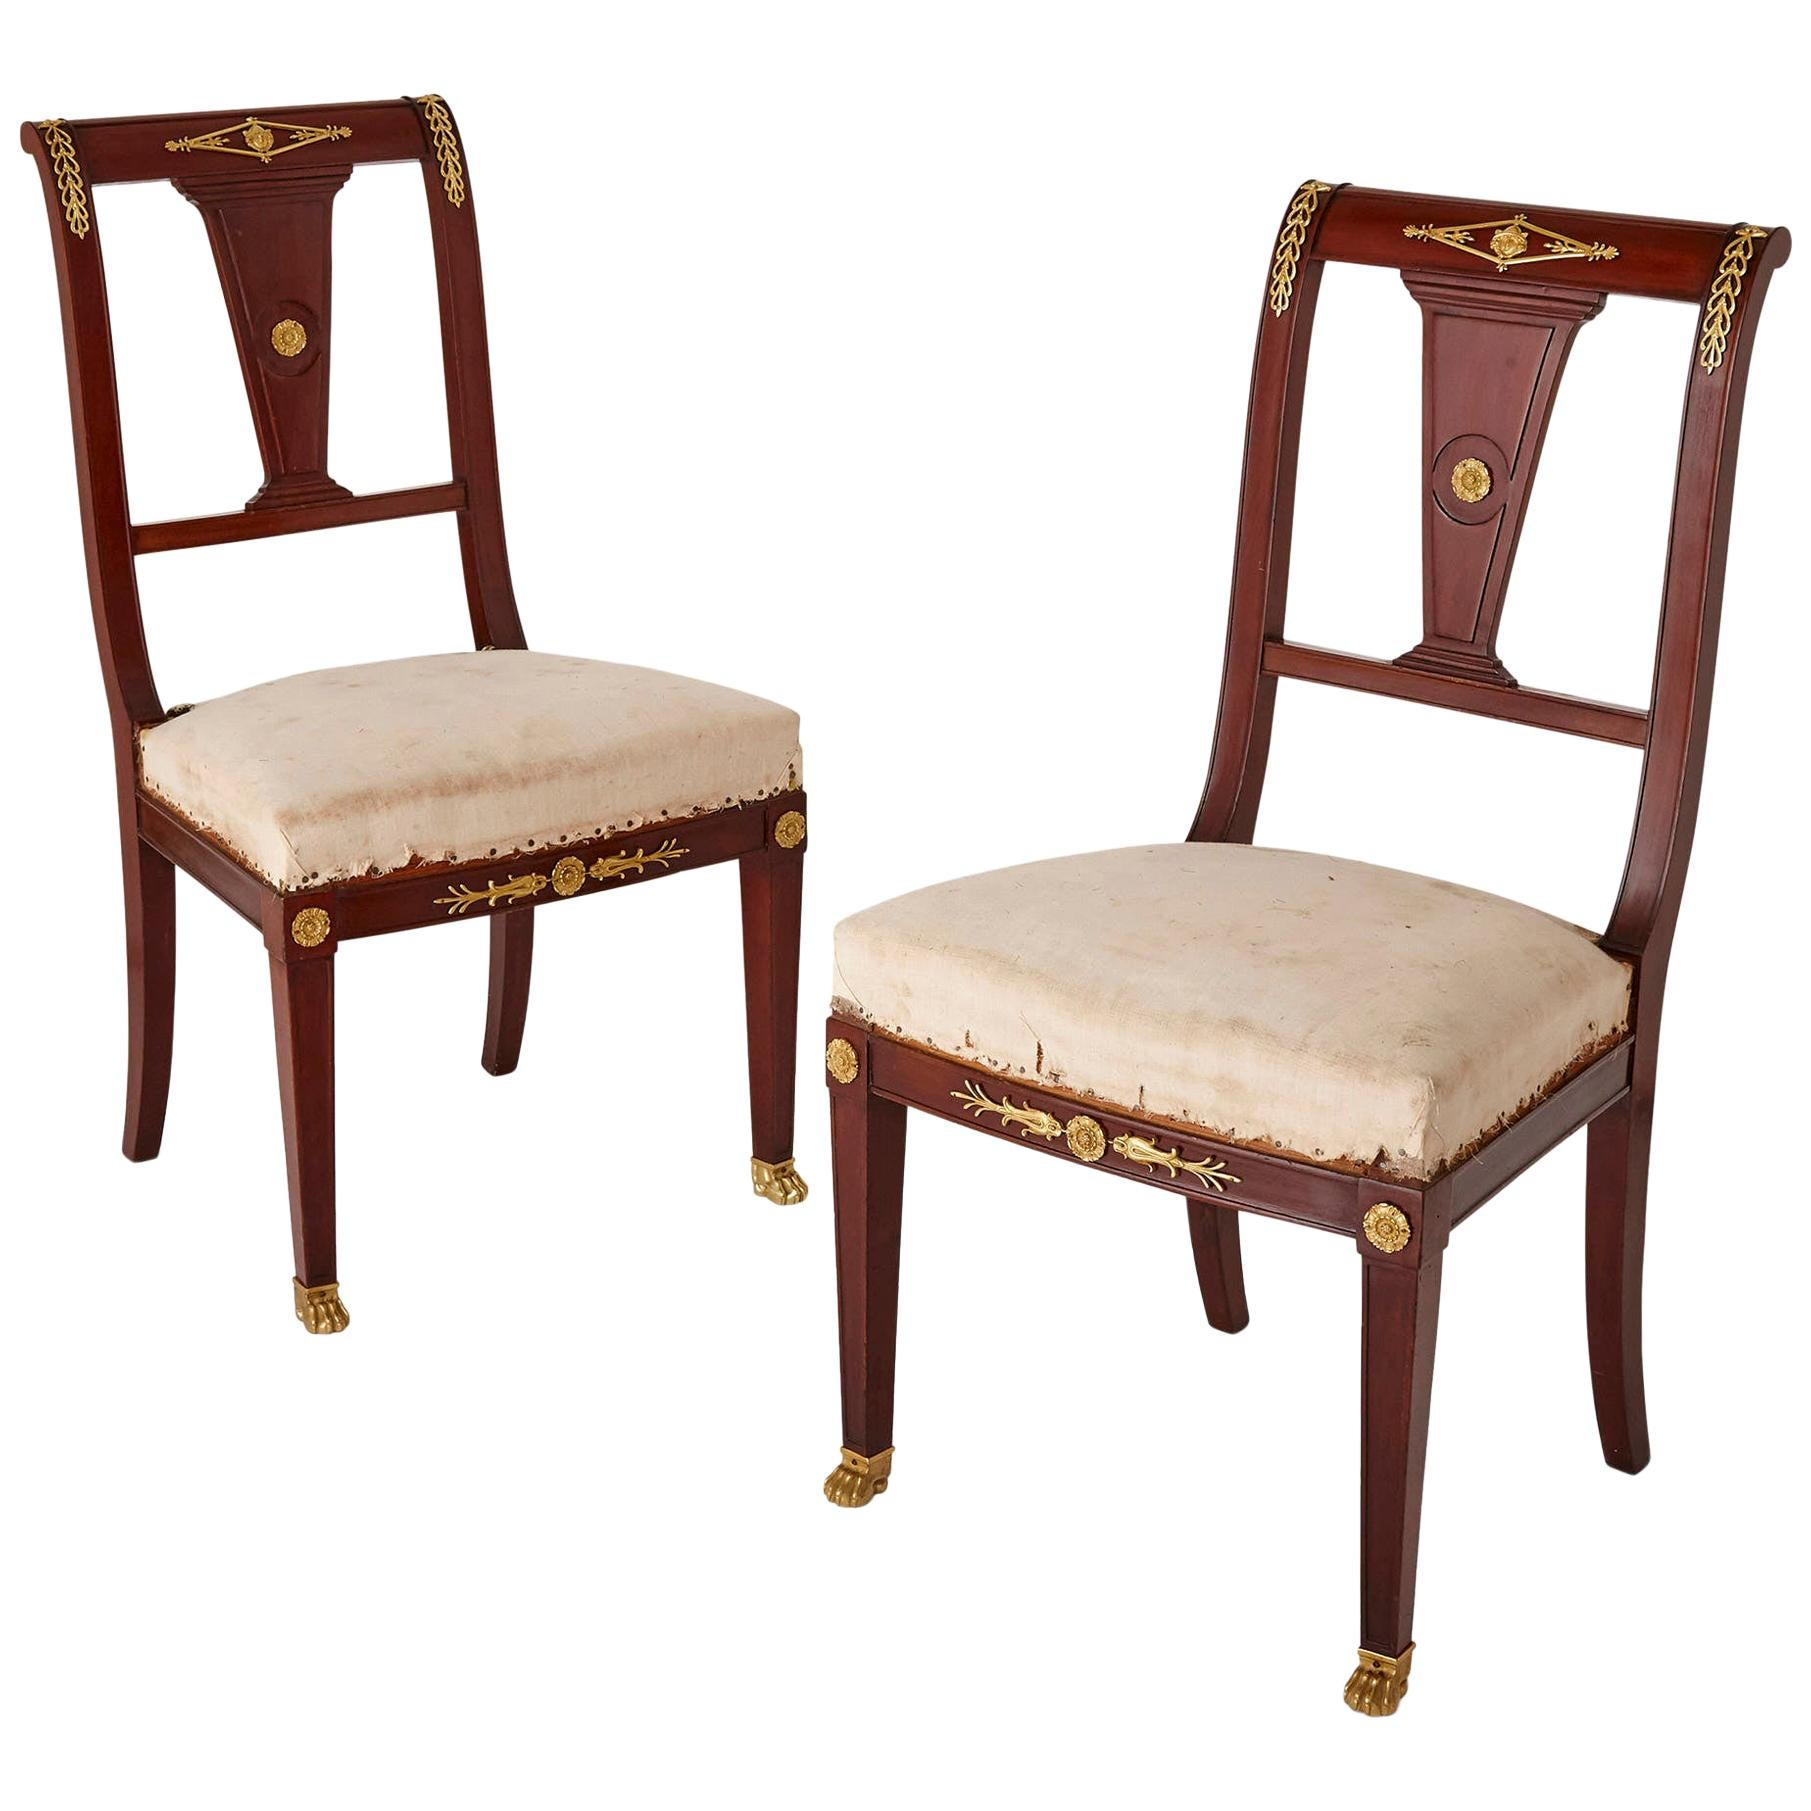 Pair of Antique French Empire Style Mahogany and Gilt Bronze Chairs